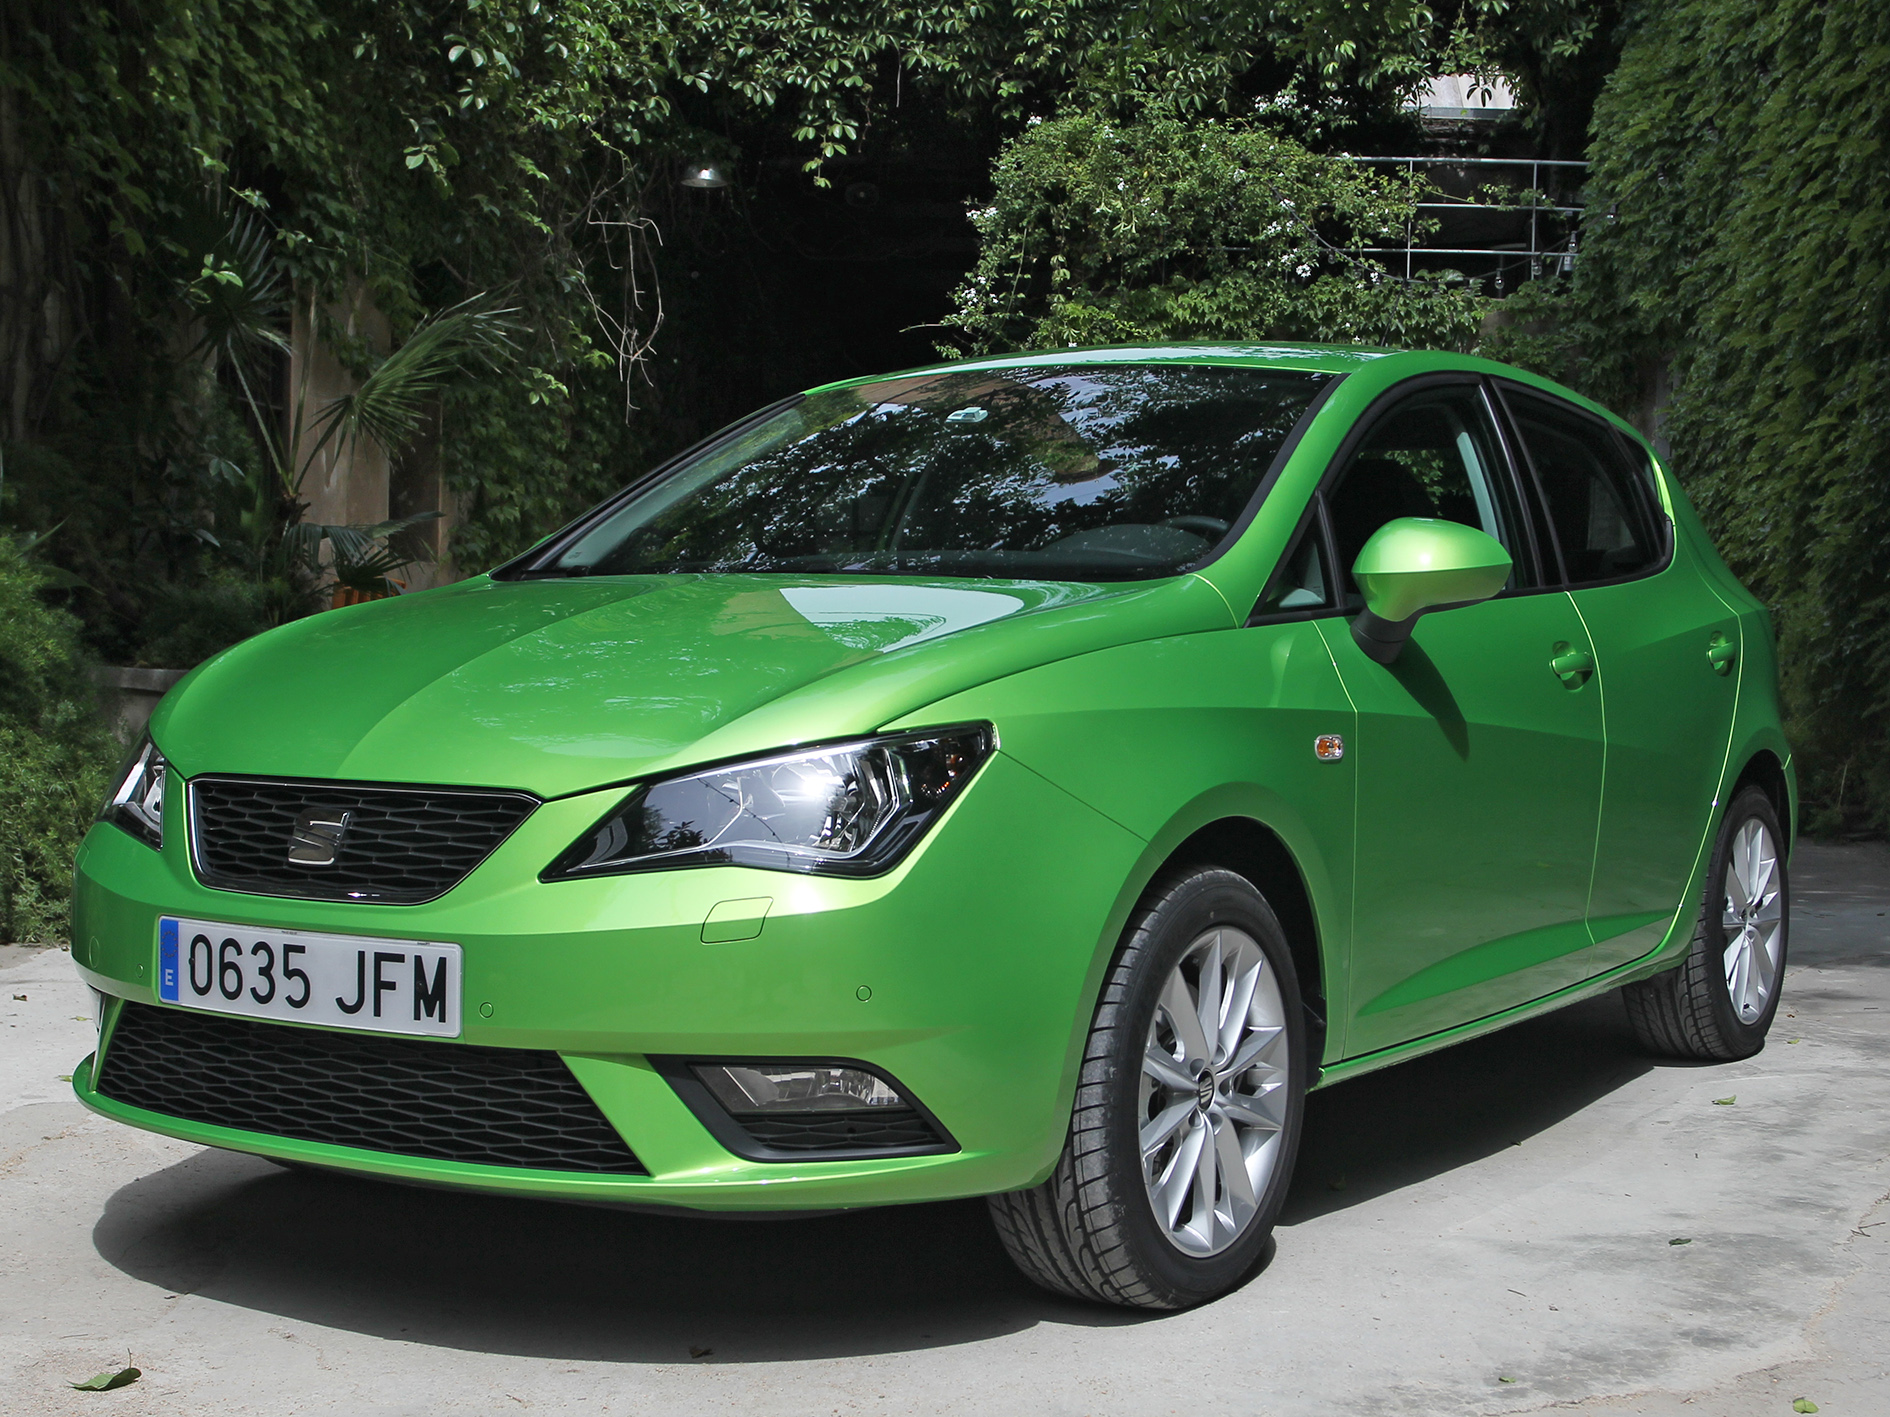 seat ibiza 2016 economical and well connected test driving report english hd. Black Bedroom Furniture Sets. Home Design Ideas